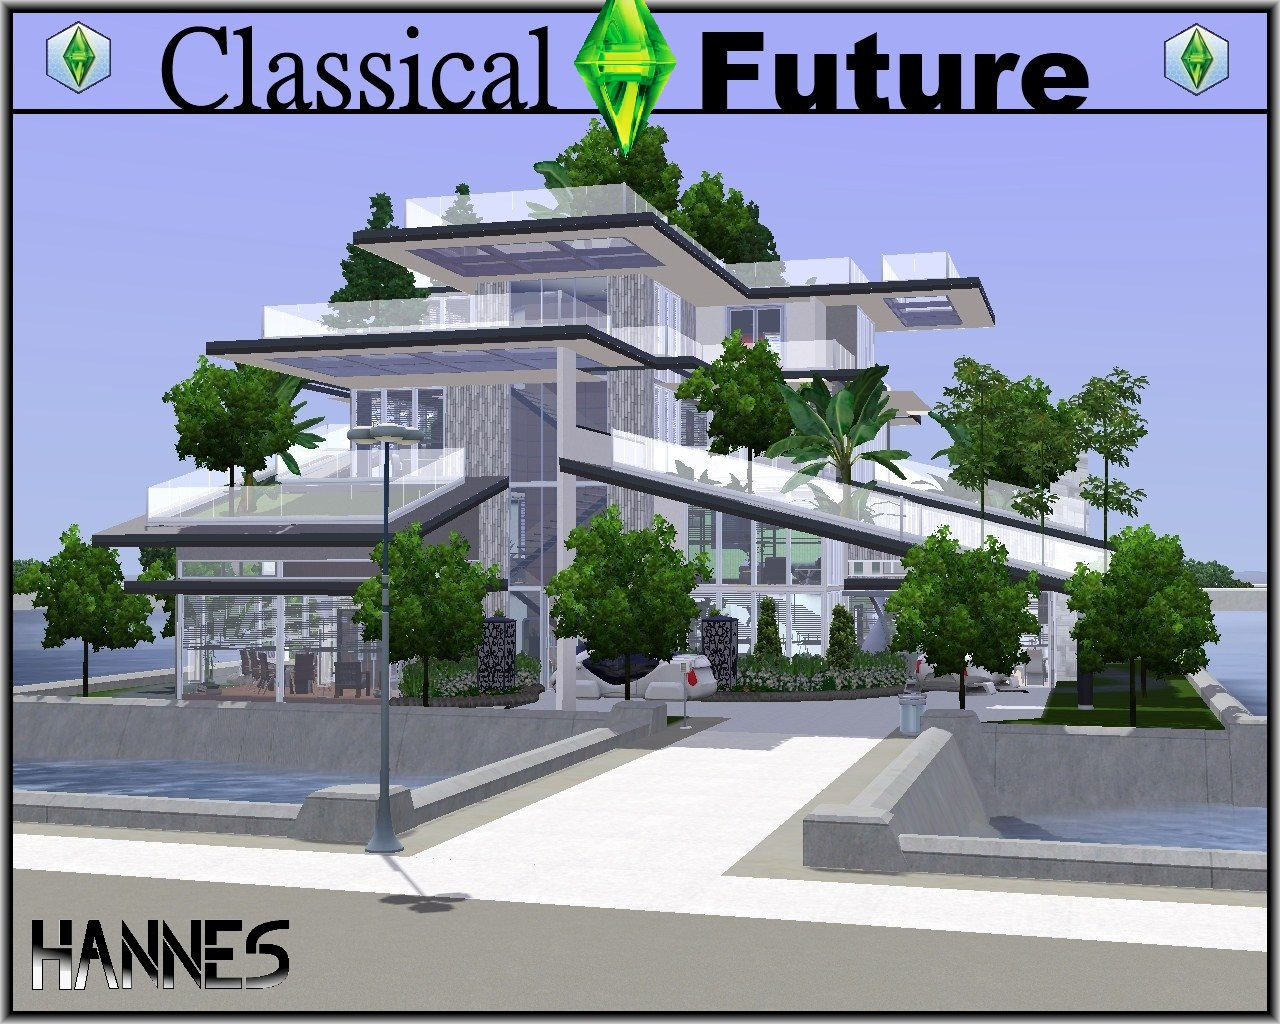 Clasical Future by Hannes16